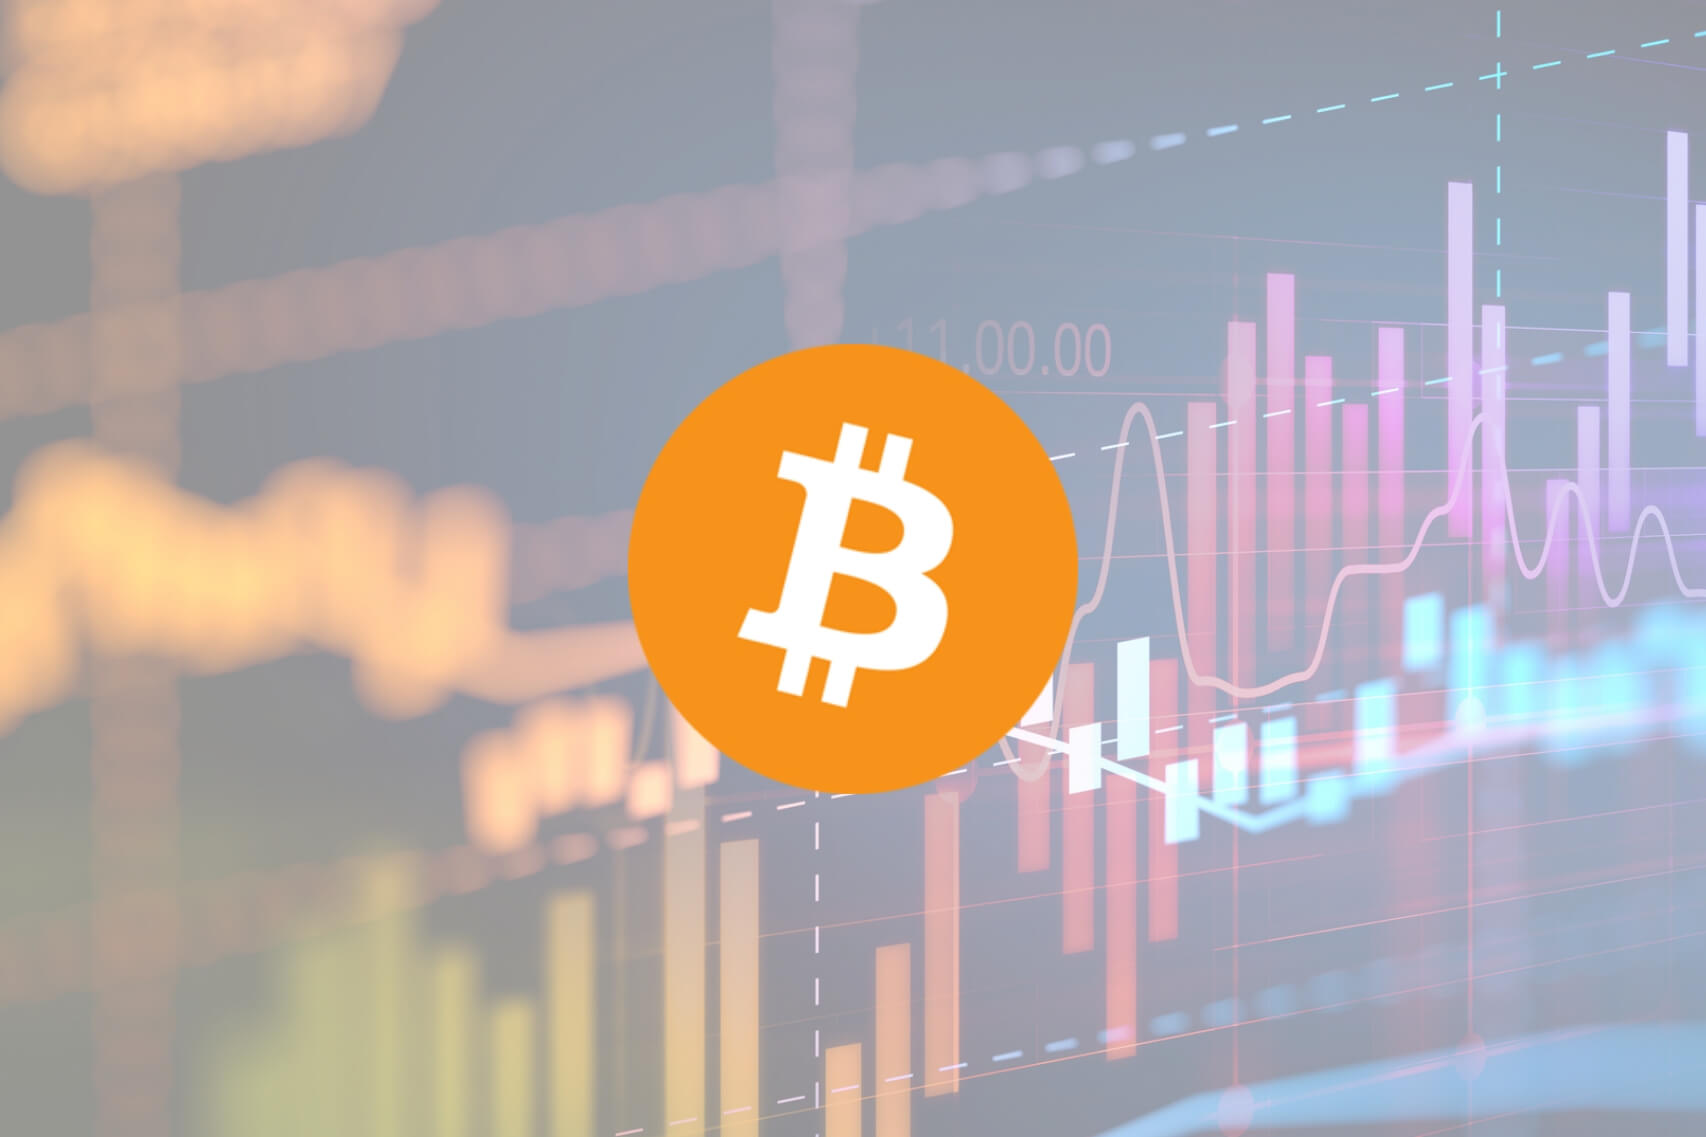 Bitcoin Price Analysis: Investors Grow Weary as the Battle to Hold at $3,421 Continues -- Can the Bulls Prevent Fresh 2019 BTC Price Lows?